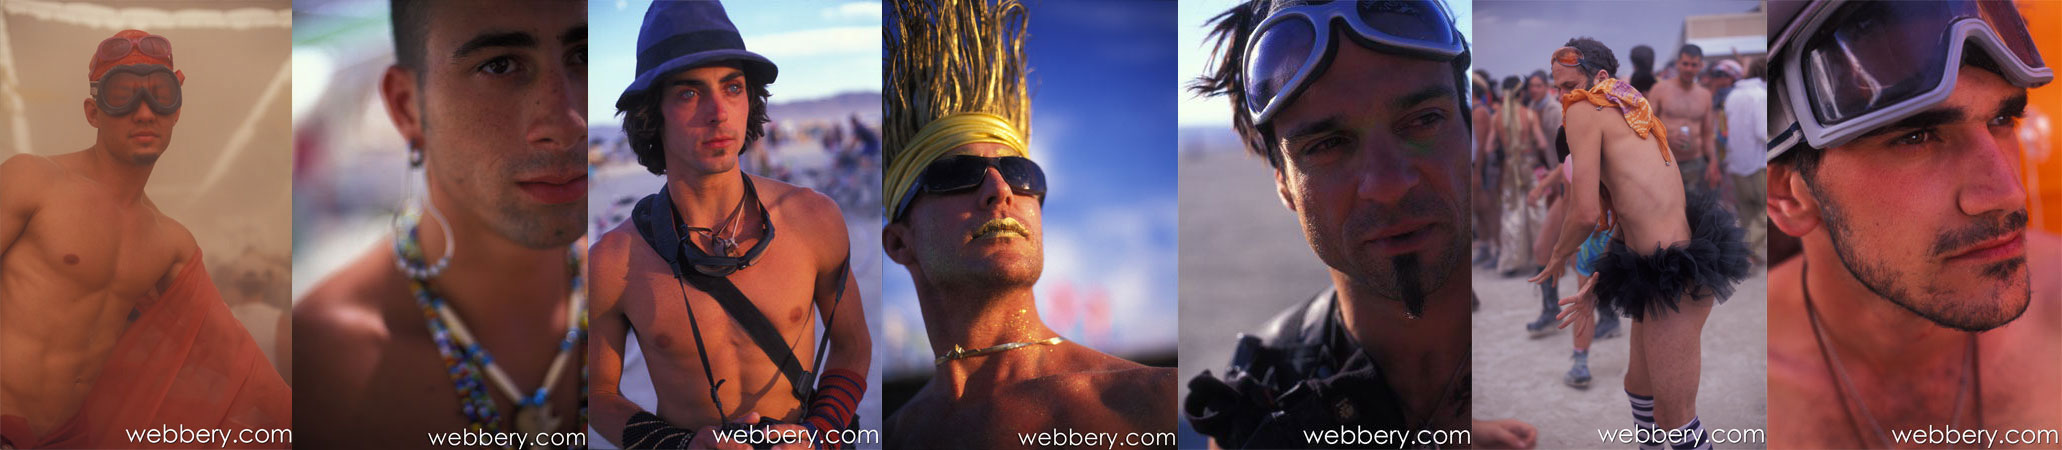 BURNING MEN 2 ... gear and heading out to Burning man in the Nevada desert this year!